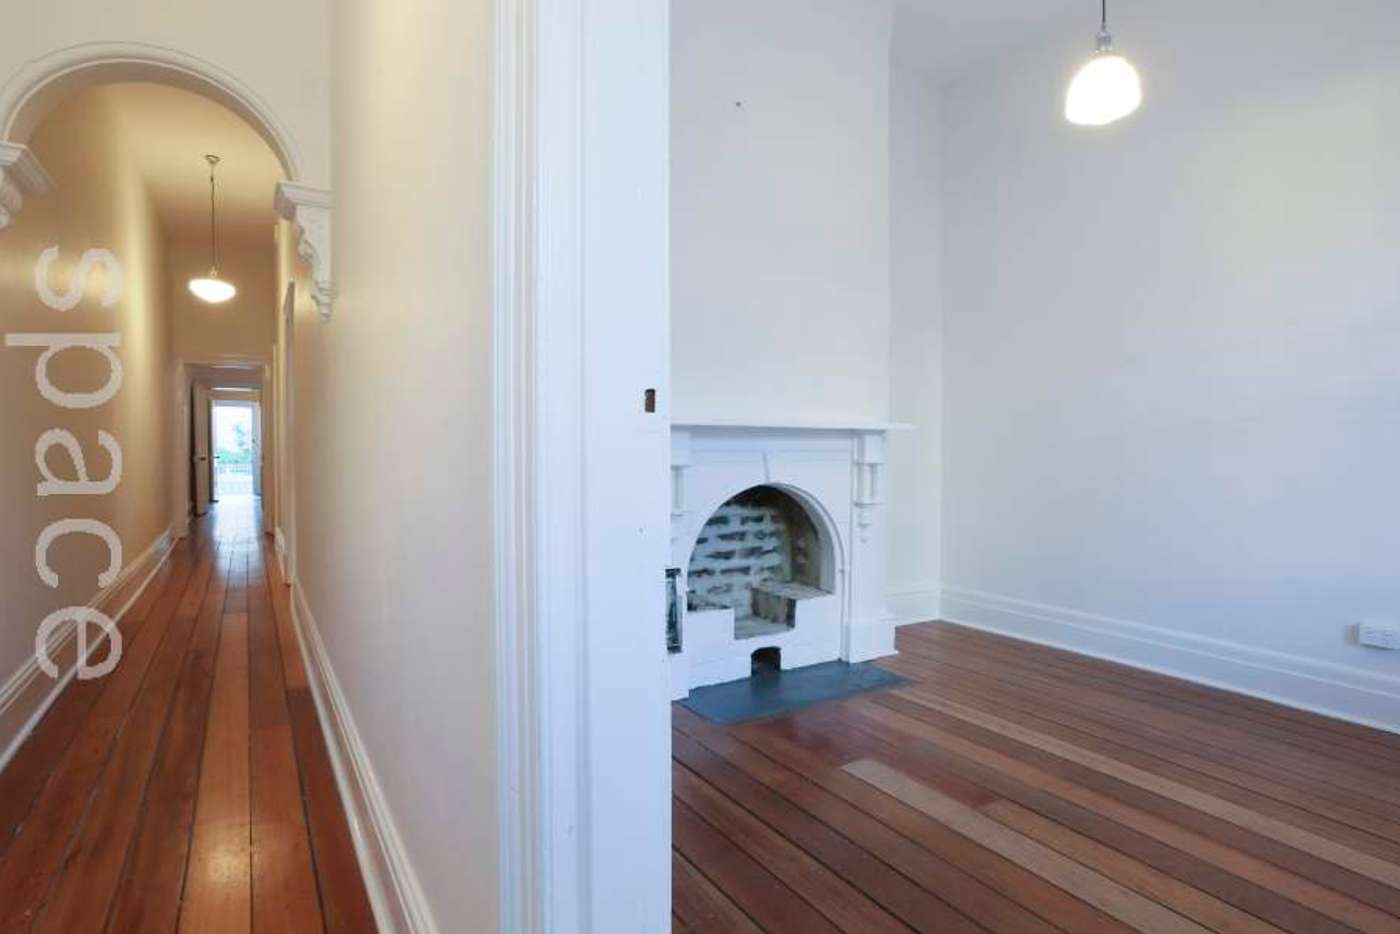 Main view of Homely house listing, 16 Little Howard Street, Fremantle WA 6160